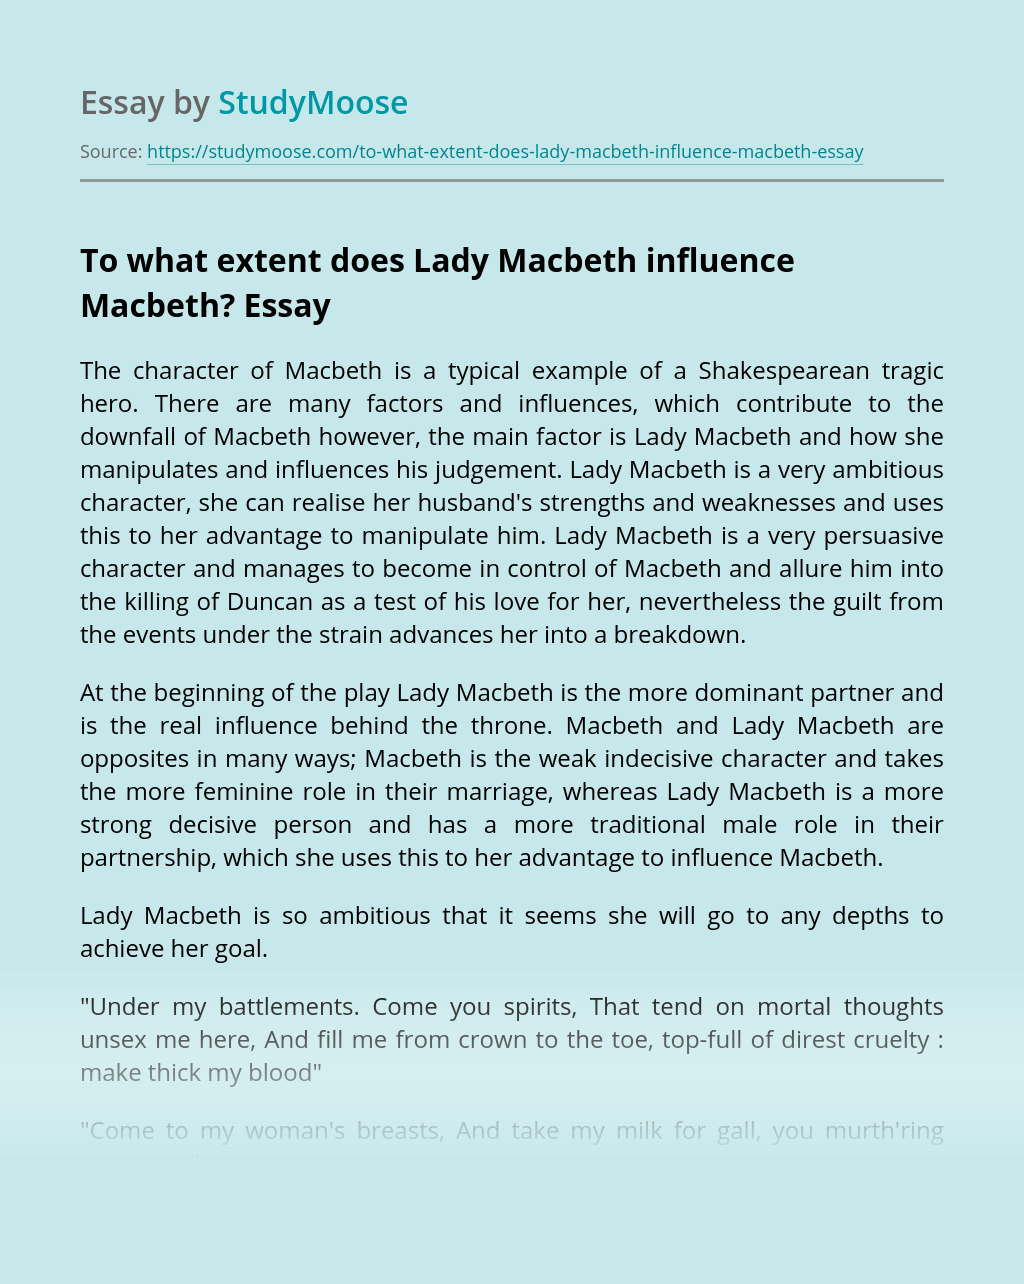 To what extent does Lady Macbeth influence Macbeth?